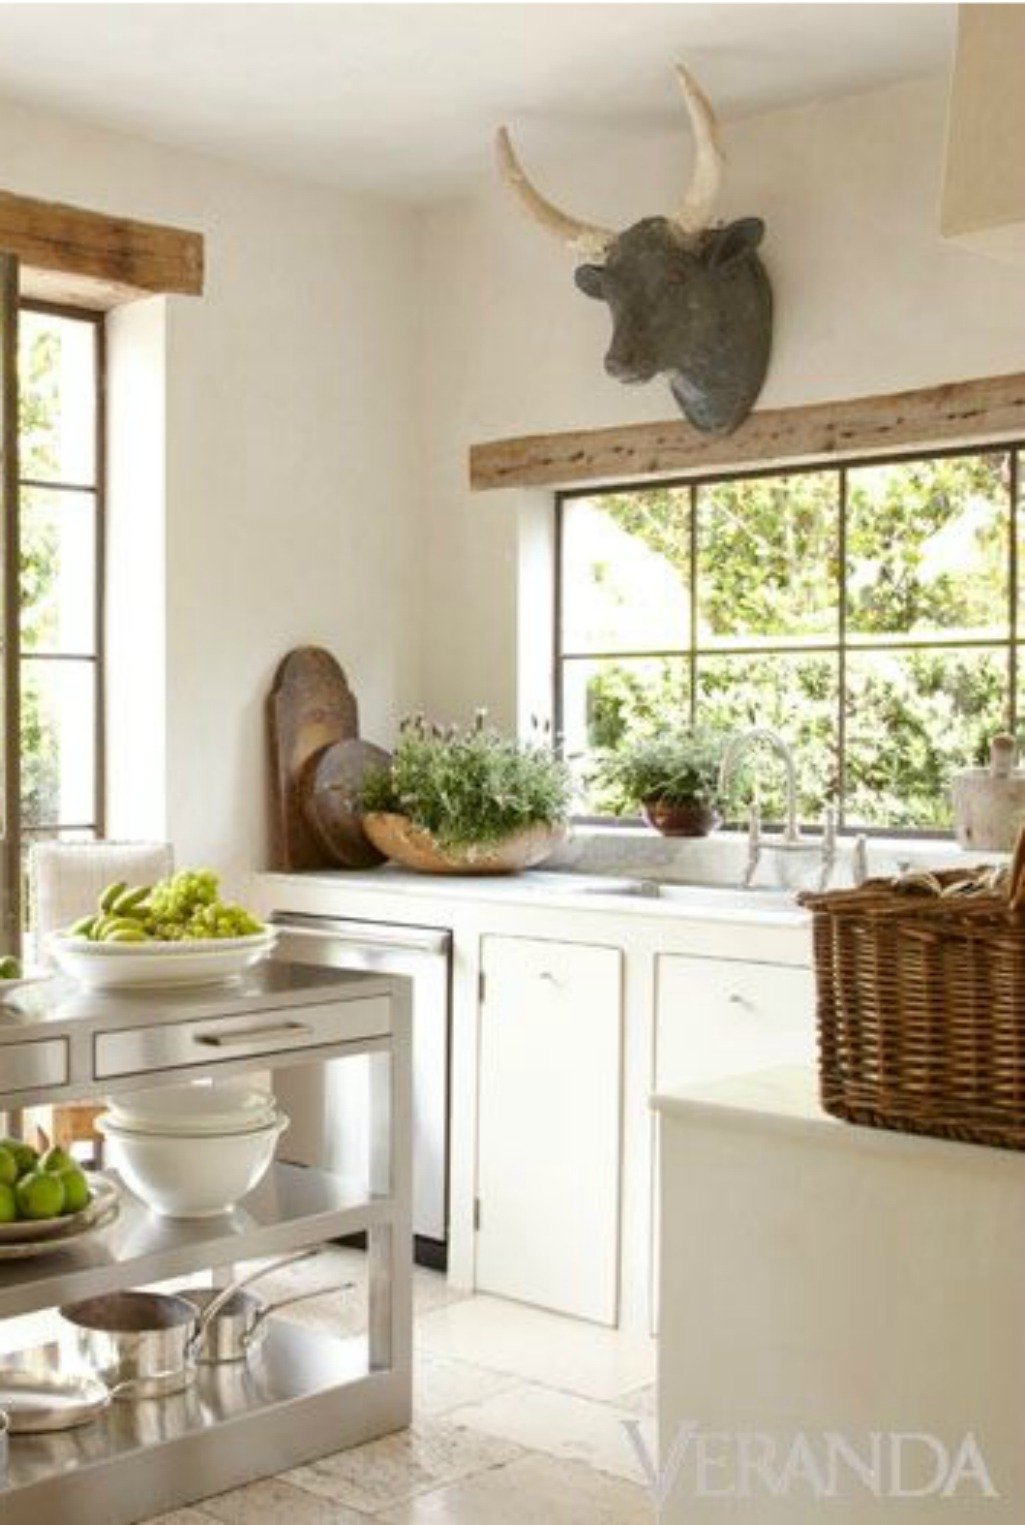 Pamela Pierce #Frenchfarmhouse kitchen with ox head, white cabinets, and stainless work island on Hello Lovely Studio